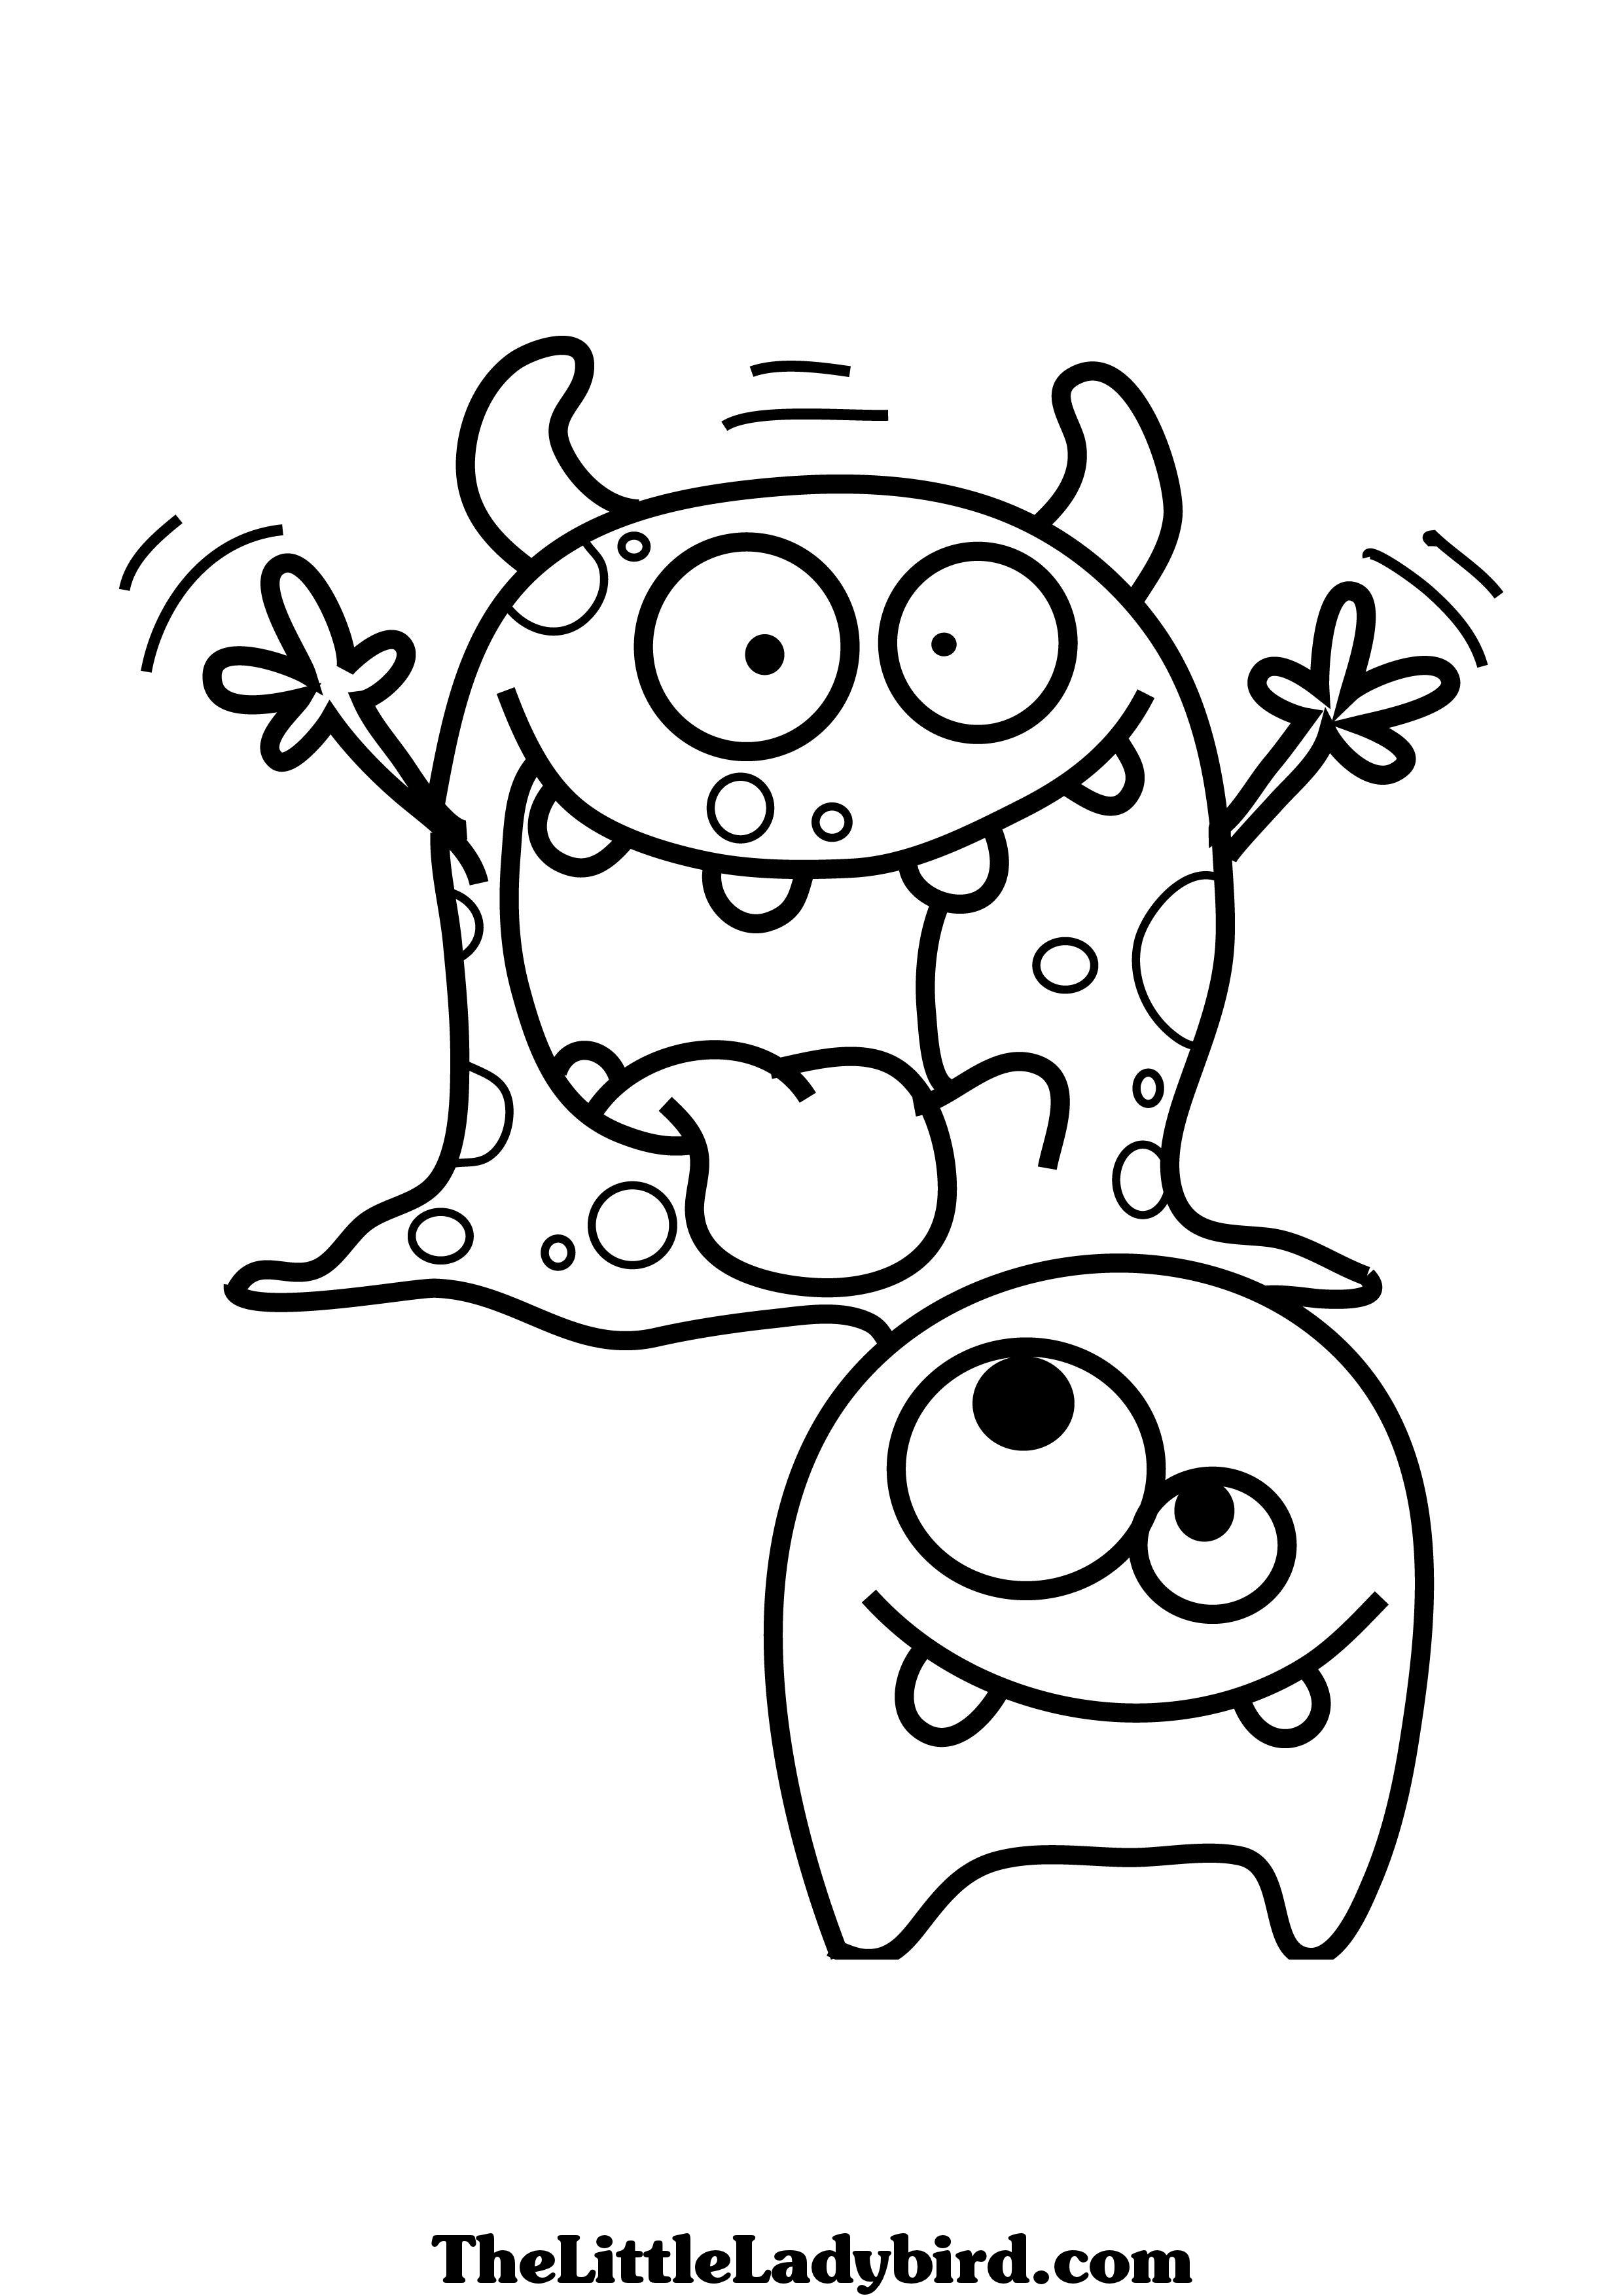 2480x3508 Cozy Design Cute Monster Coloring Pages To Print Baby Little